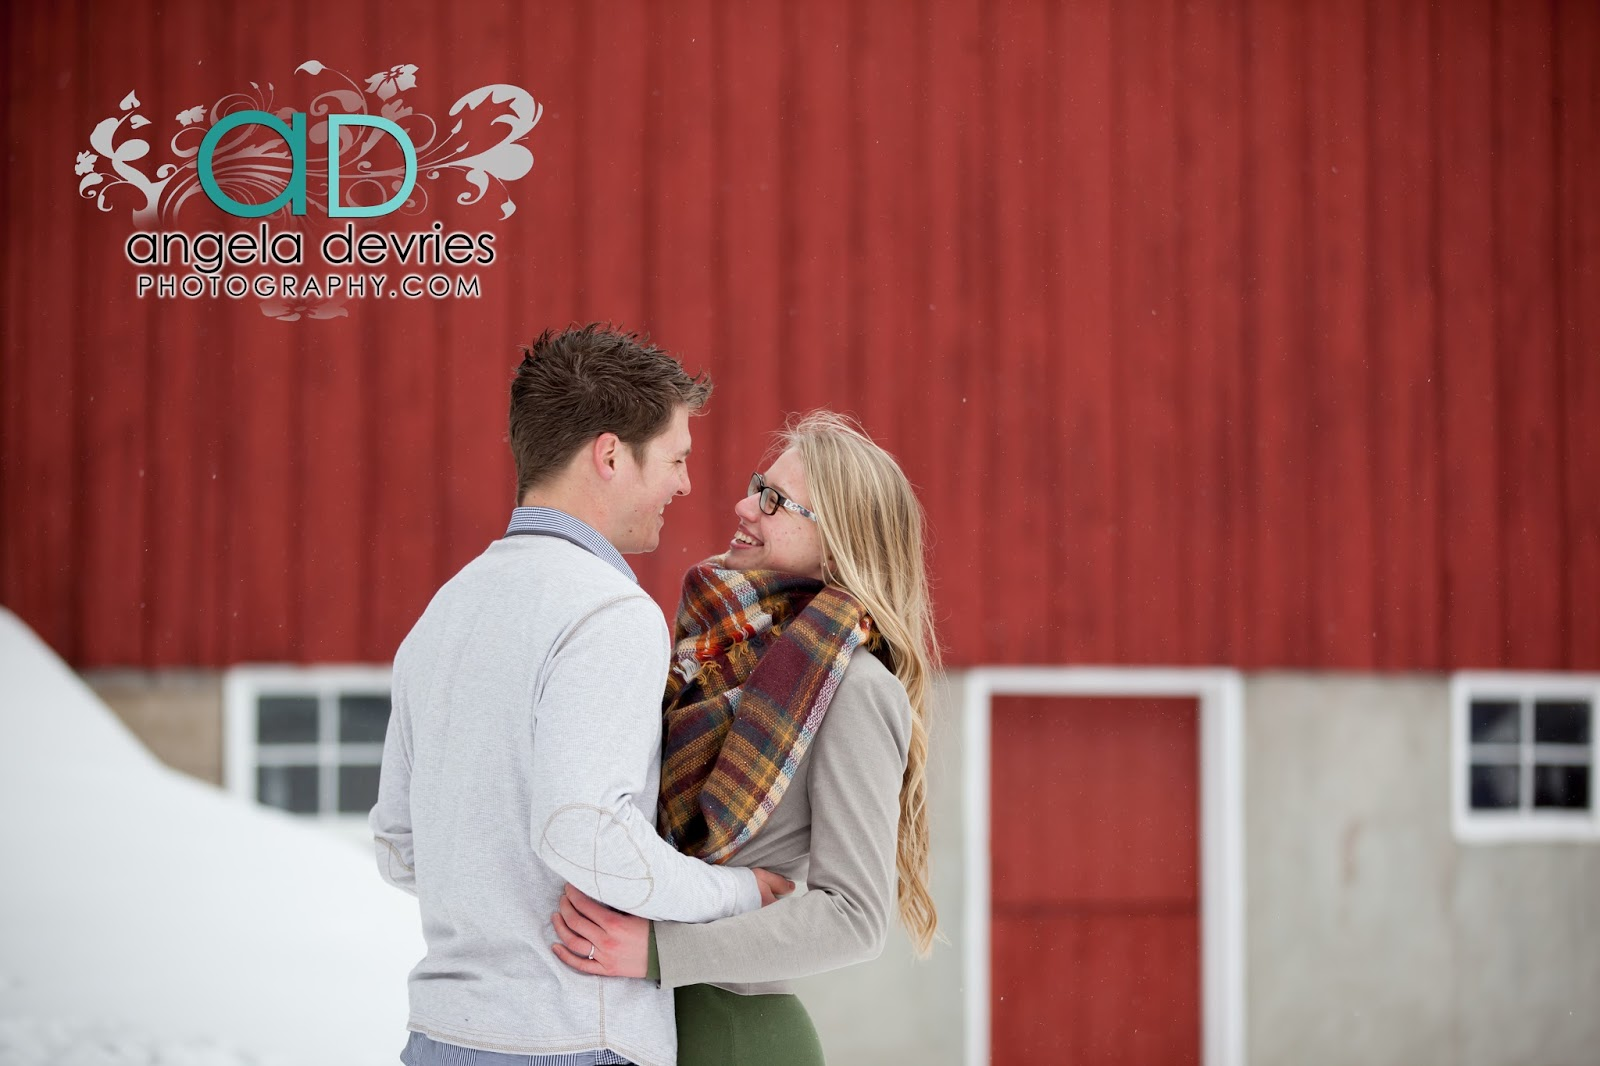 Angela DeVries Graphy Matthew Stubbe & Ellen Hoeve Are Engaged